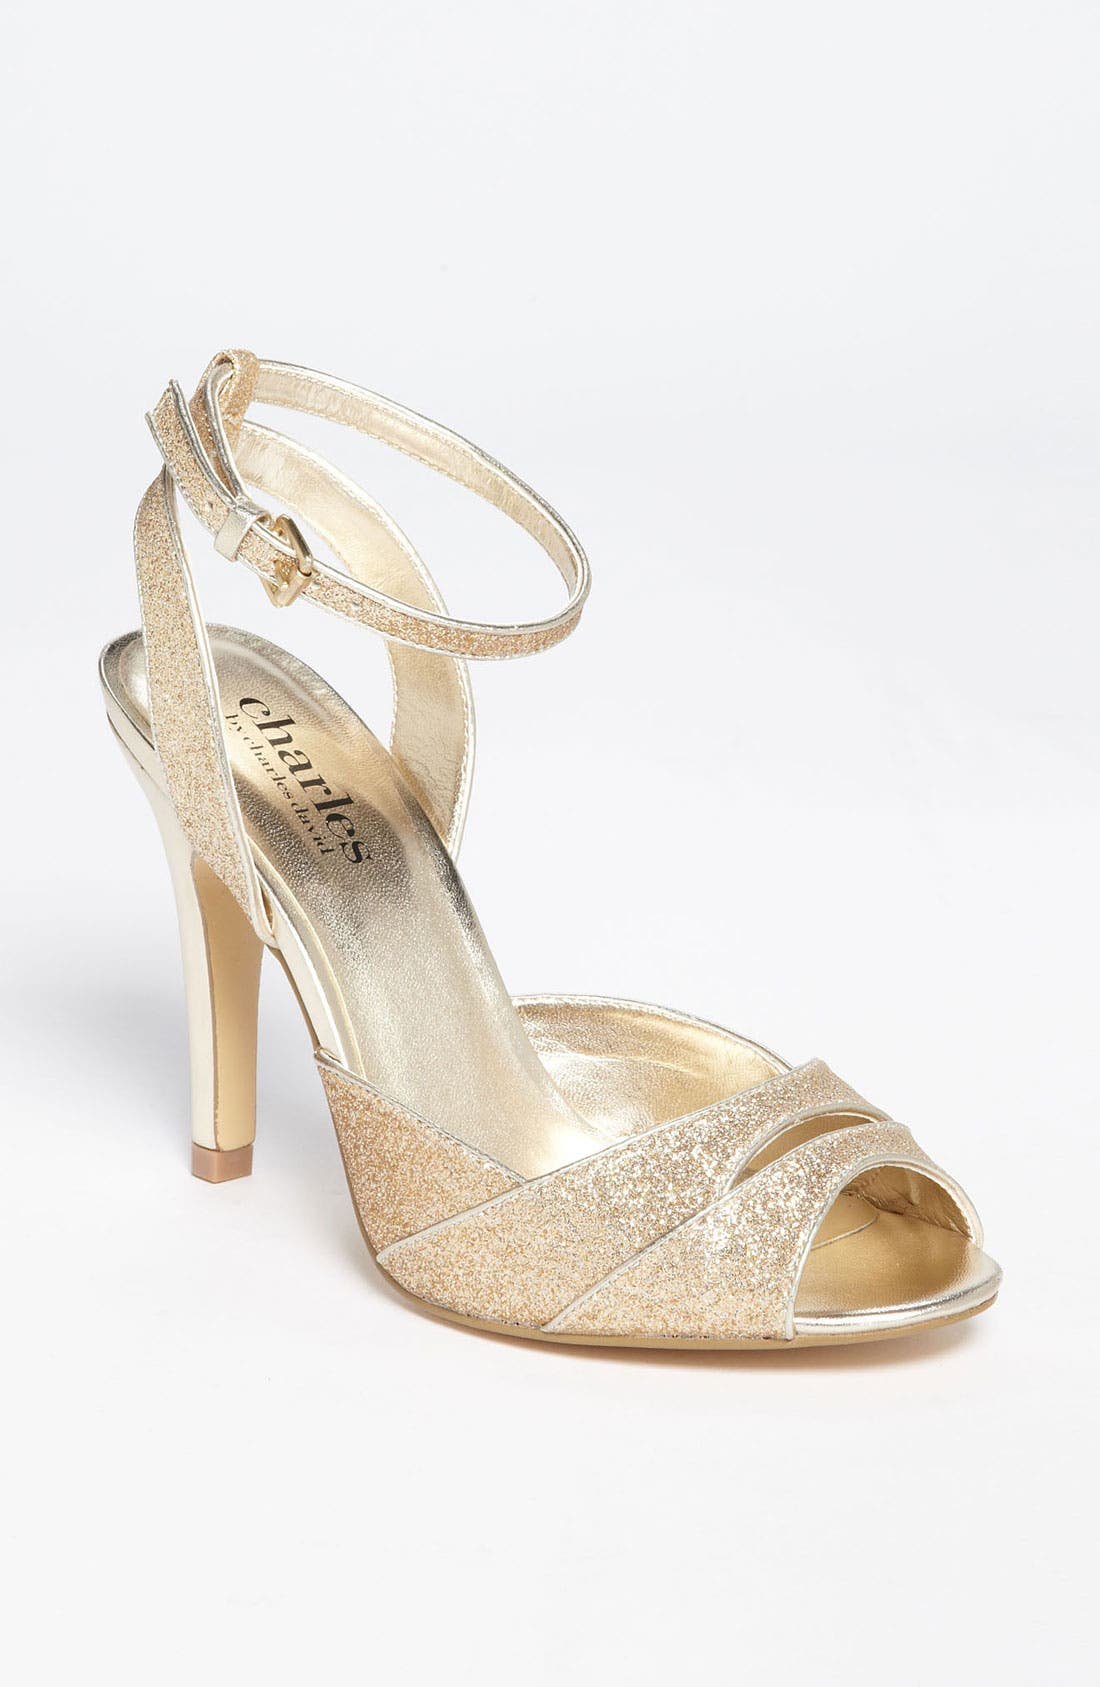 Alternate Image 1 Selected - Charles by Charles David 'Glaze' Sandal (Online Only)